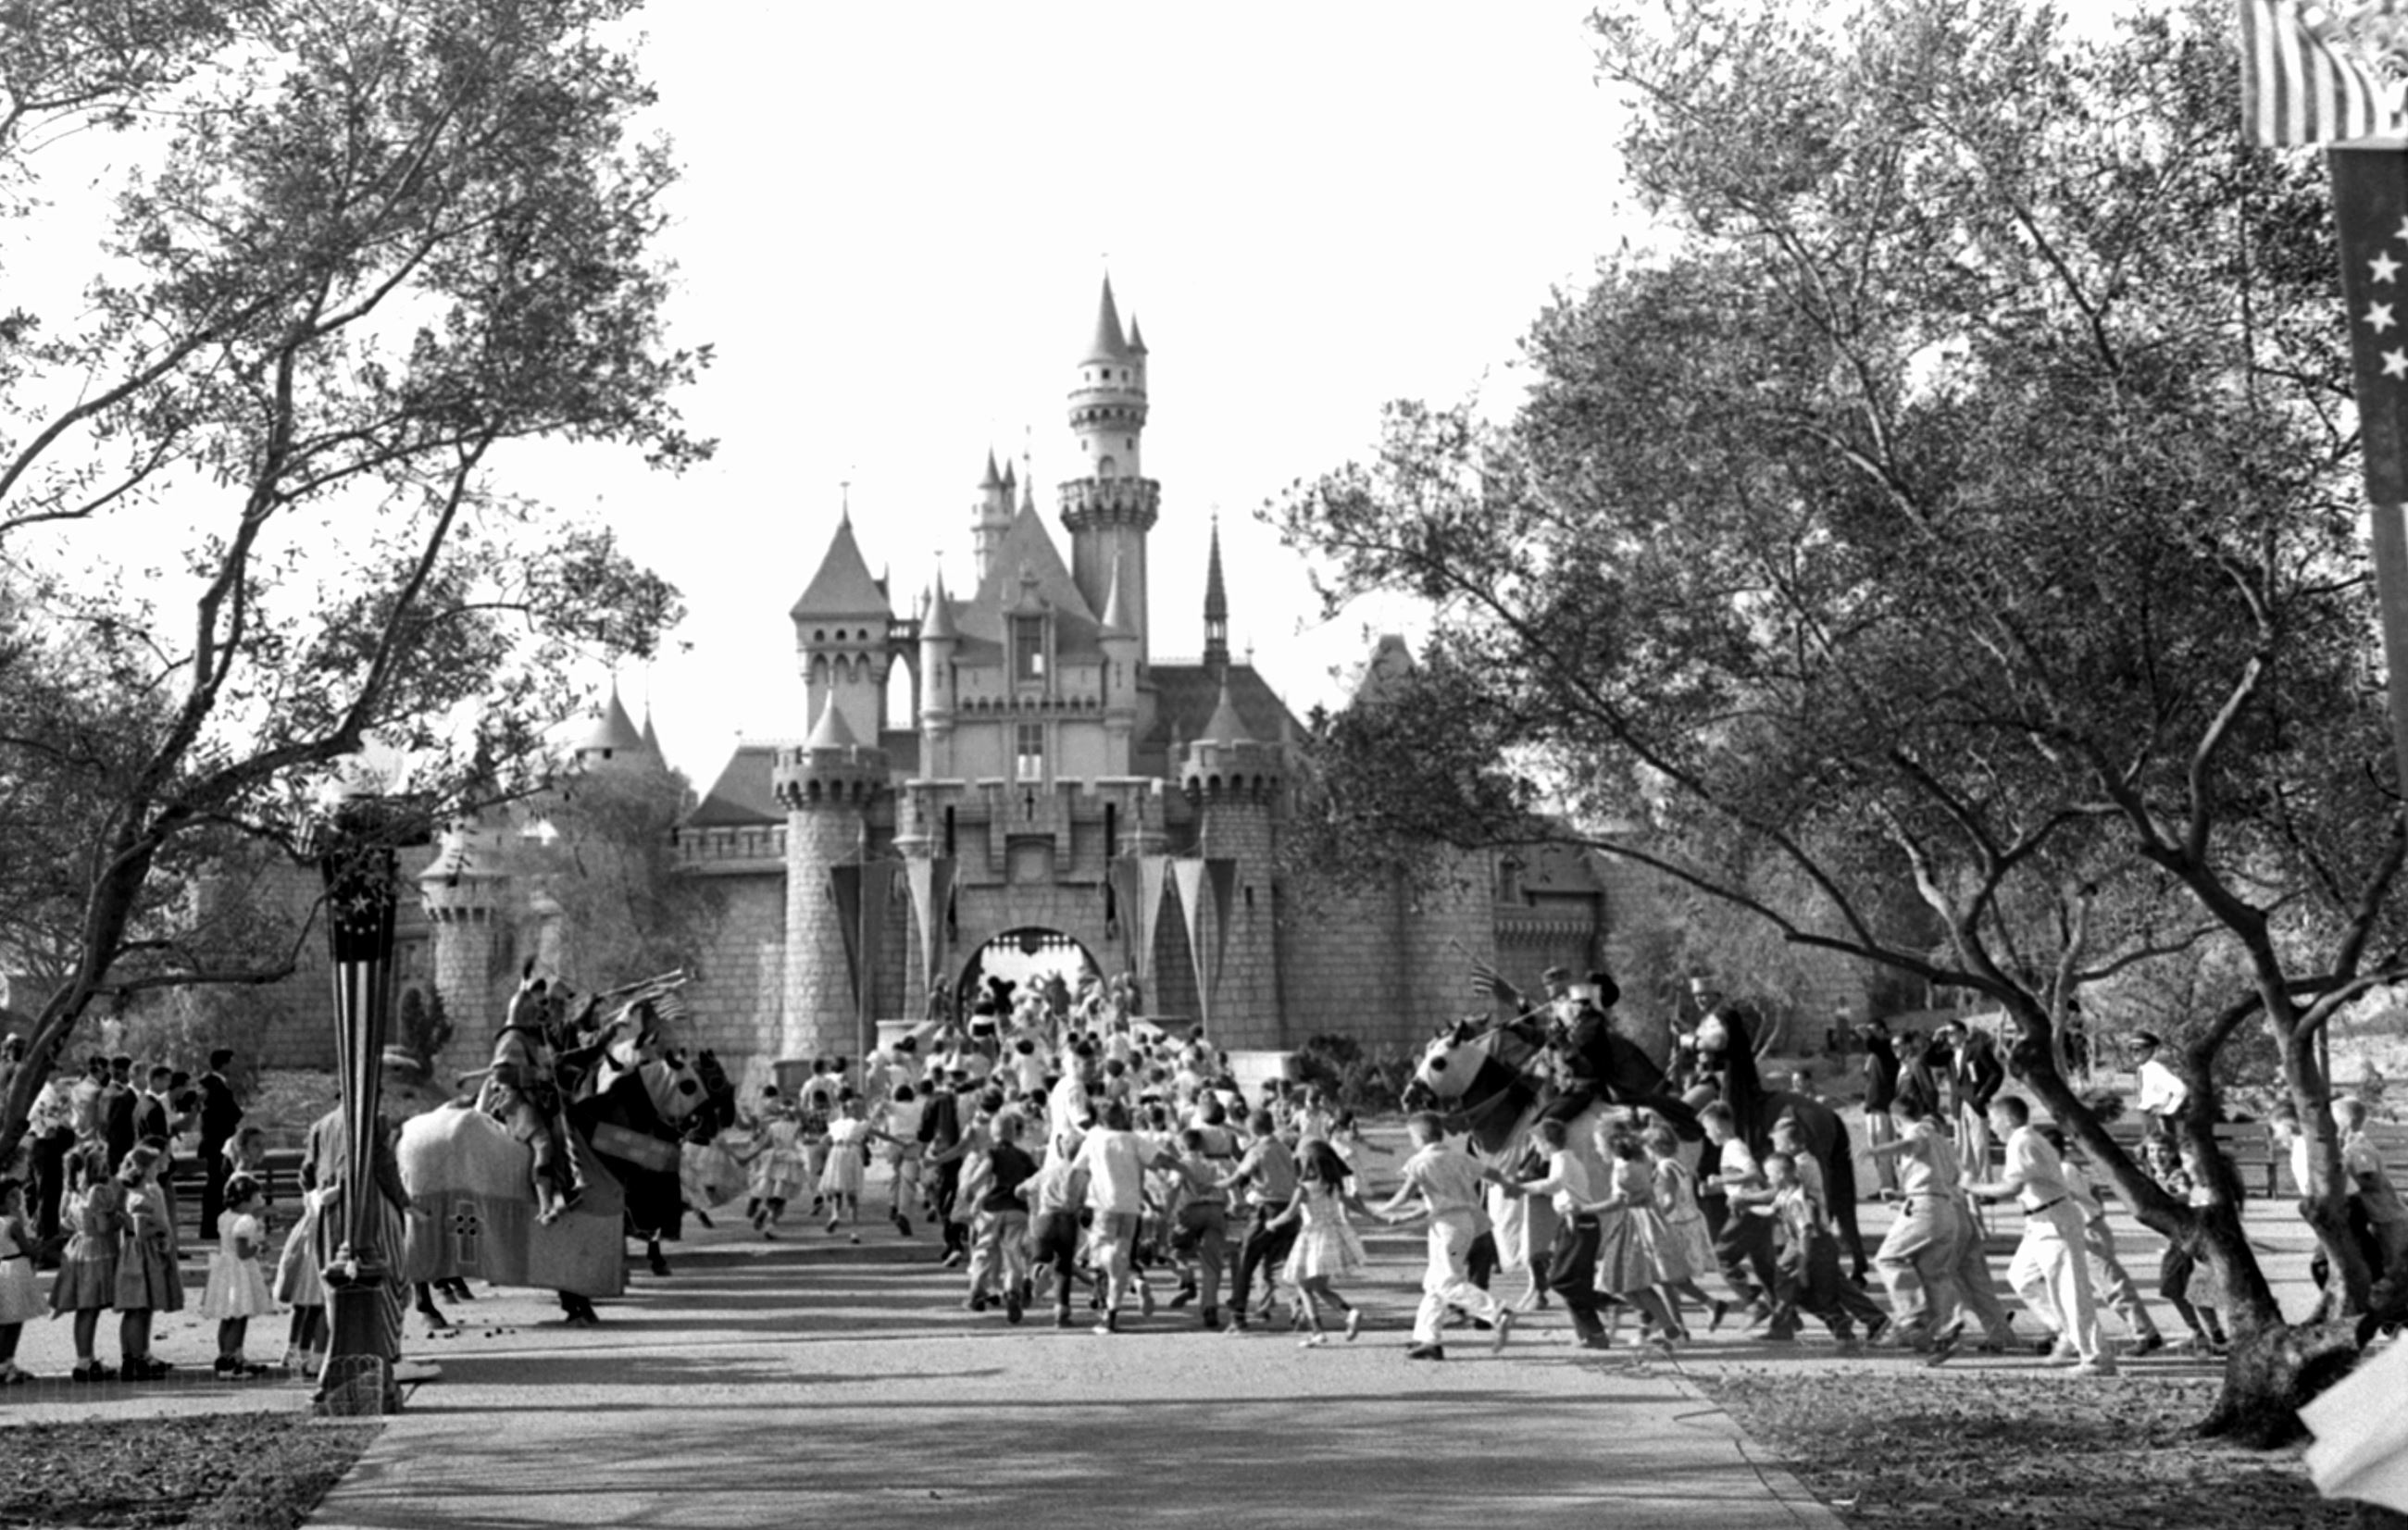 Slide 2 of 33: FILE - In this Sunday, July 17, 1955 file photo, children sprint across a drawbridge and into a castle that marks the entrance to Fantasyland at the opening of Walt Disney's Disneyland in Anaheim, Calif. Fantasyland had been closed until late in the day.